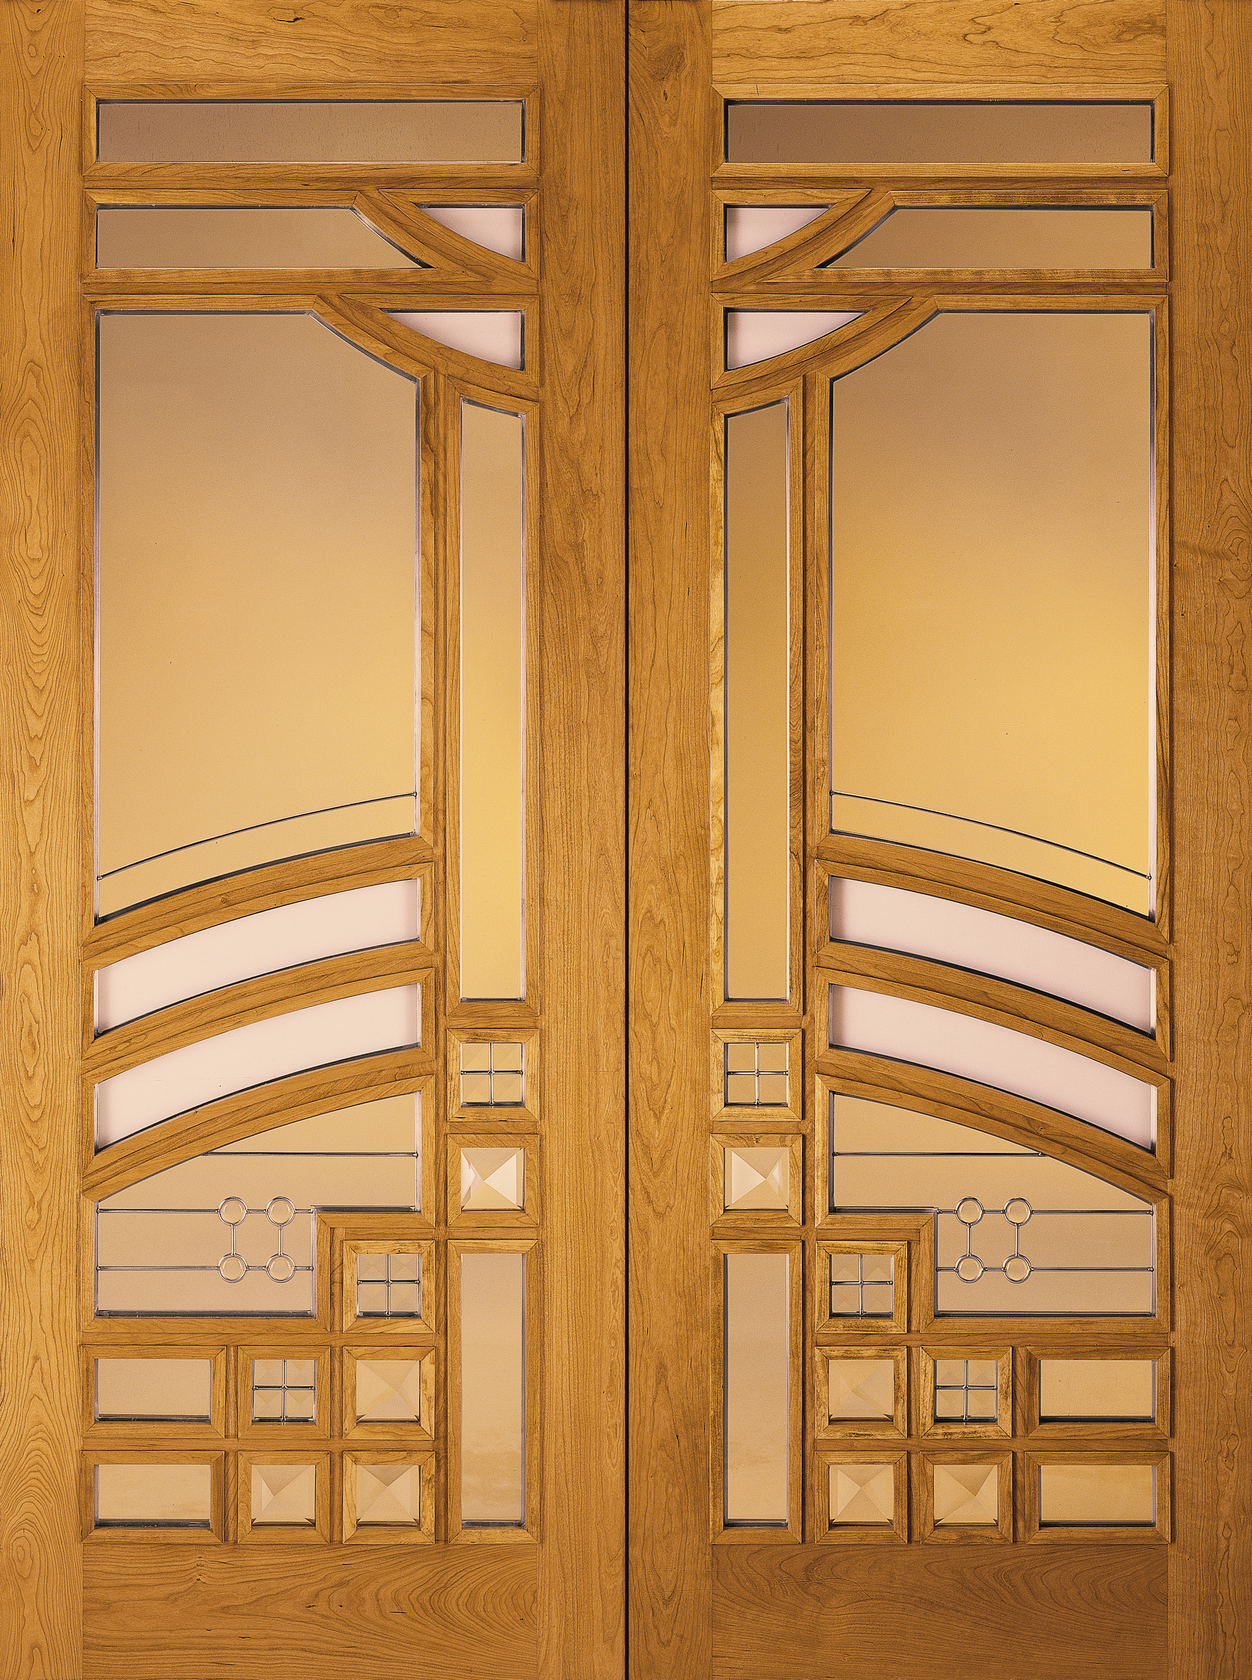 Custom wood glass panel exterior door jeld wen doors windows custom wood glass panel exterior door jeld wen doors windows buycottarizona Image collections